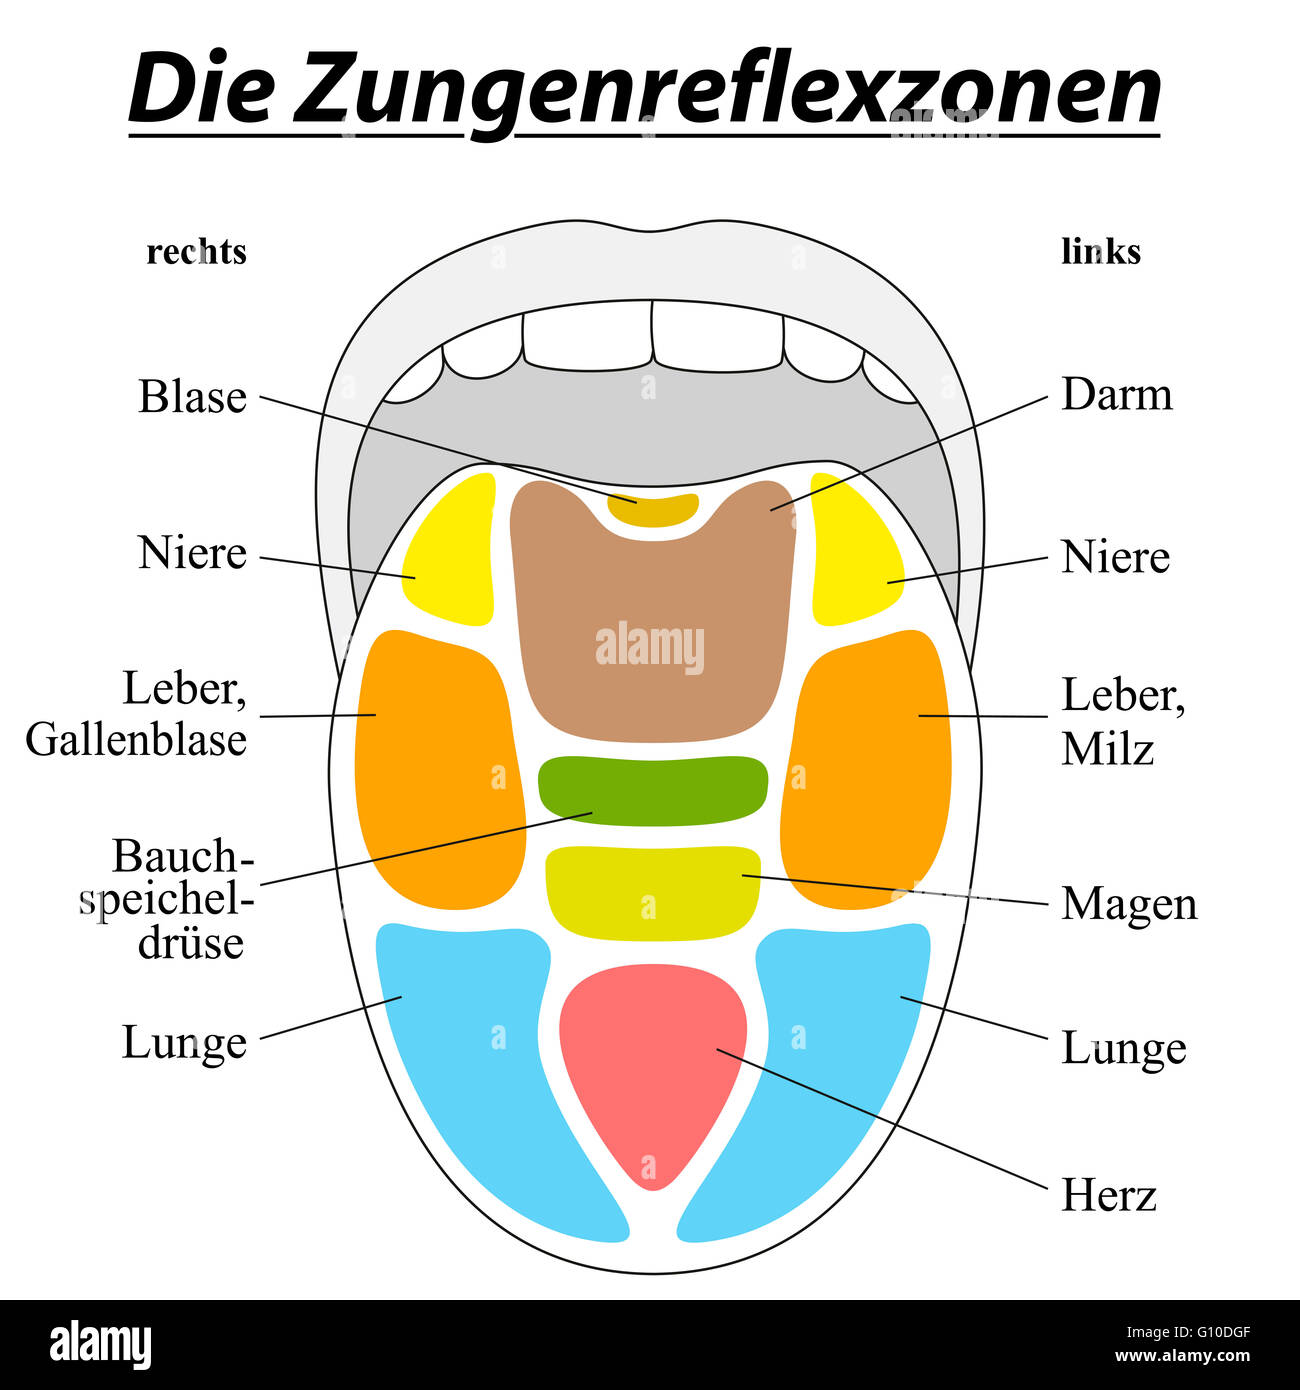 hight resolution of tongue reflexology chart german labeling with description of the corresponding internal organs